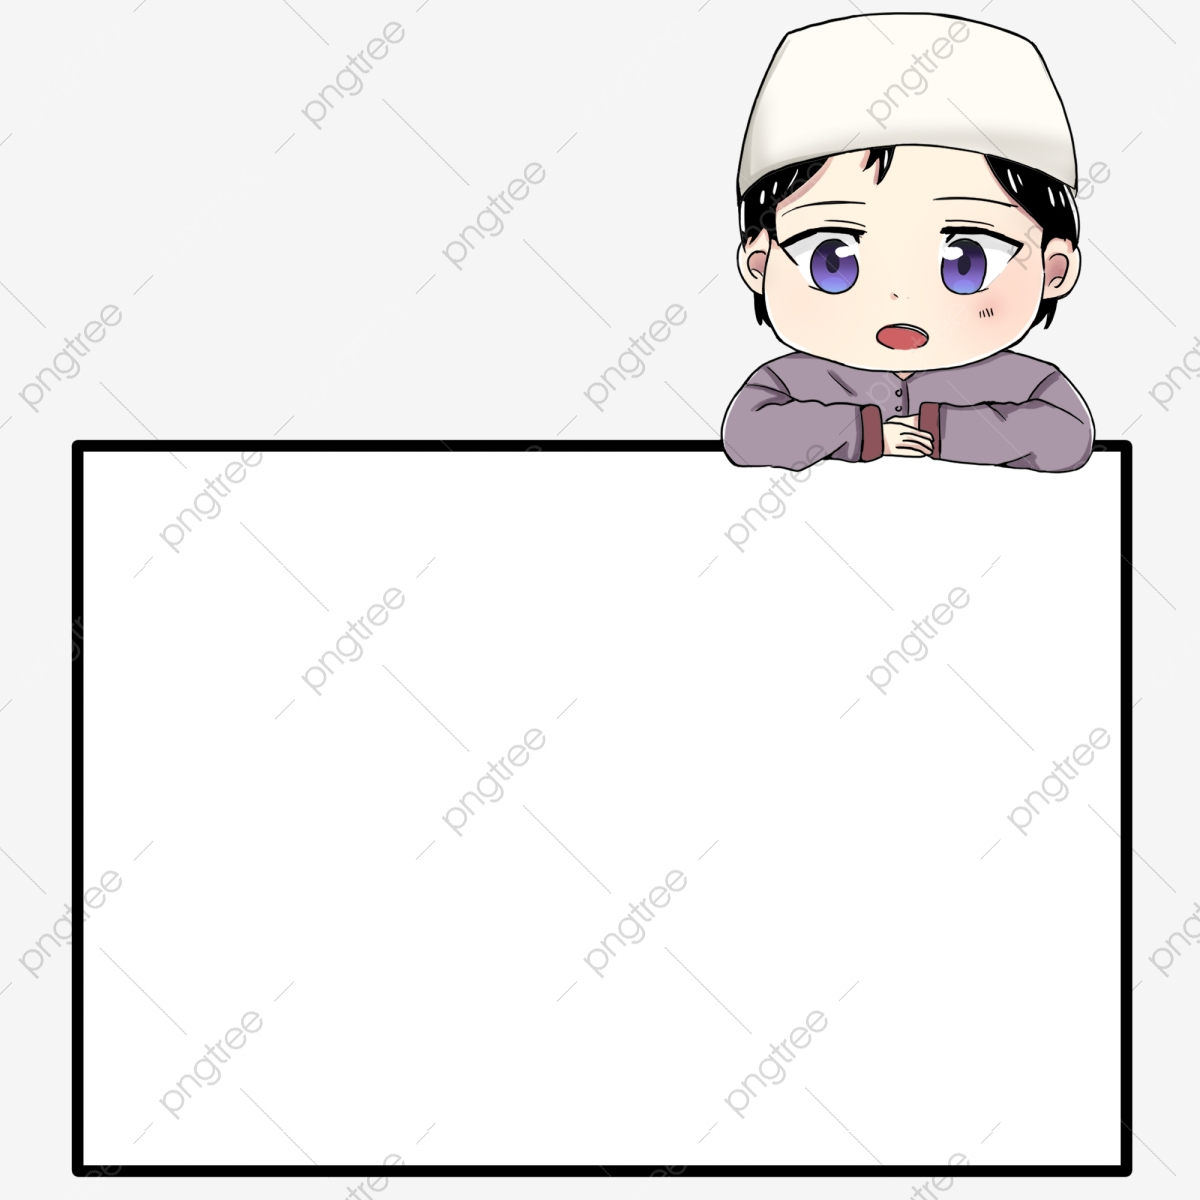 Anak Muslim Png Images Vector And Psd Files Free Download On Pngtree